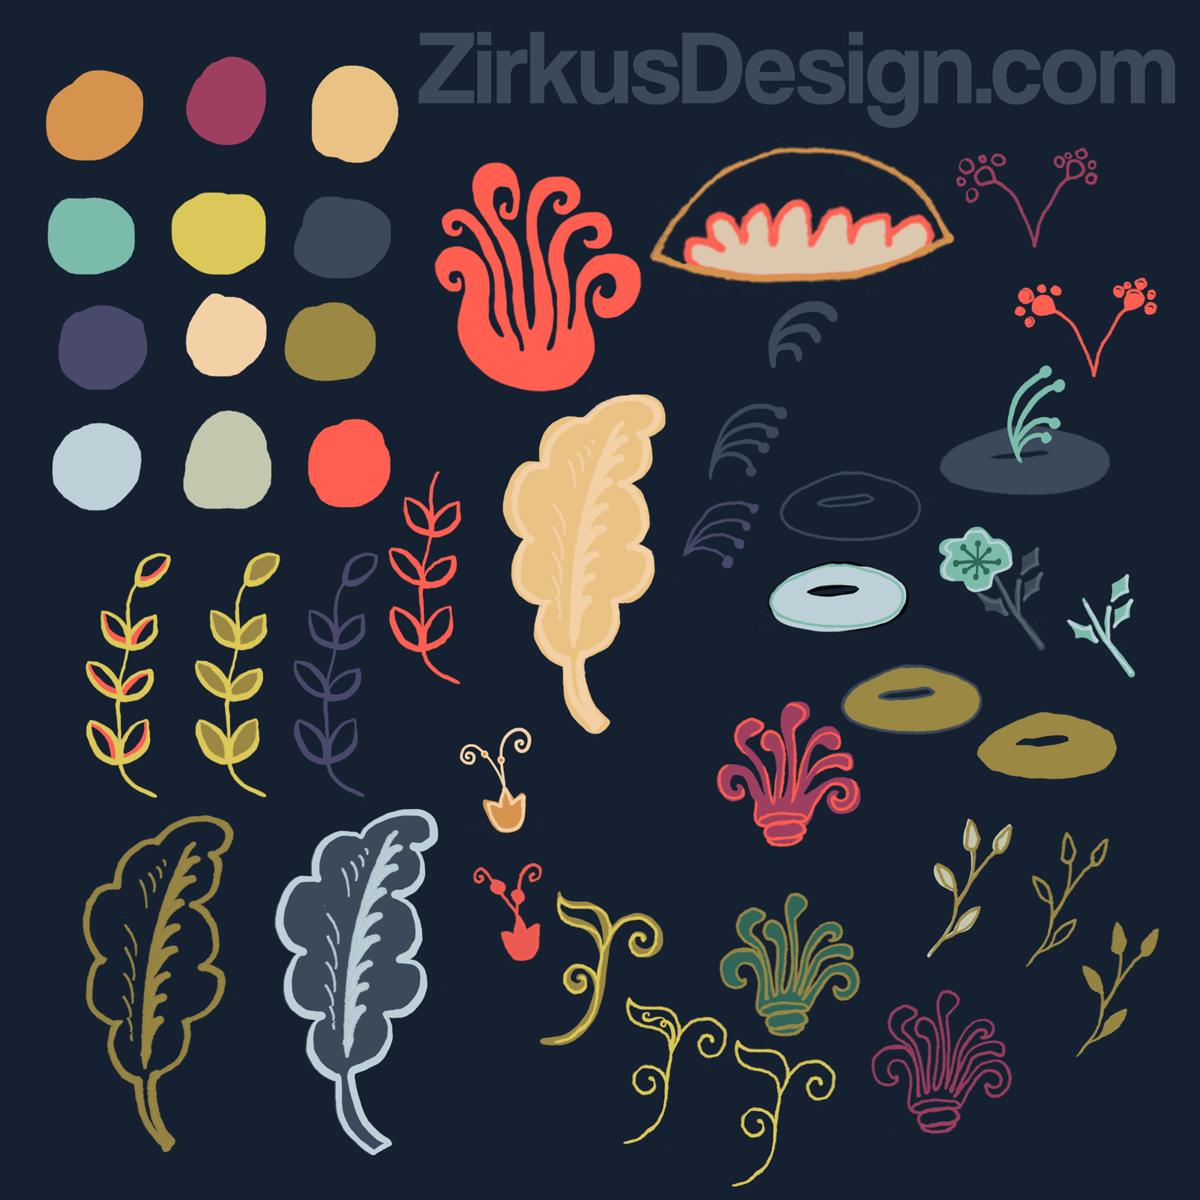 Zirkus Design | New Navy Vintage Floral Pattern - Design Process: Sketches + Color Palette